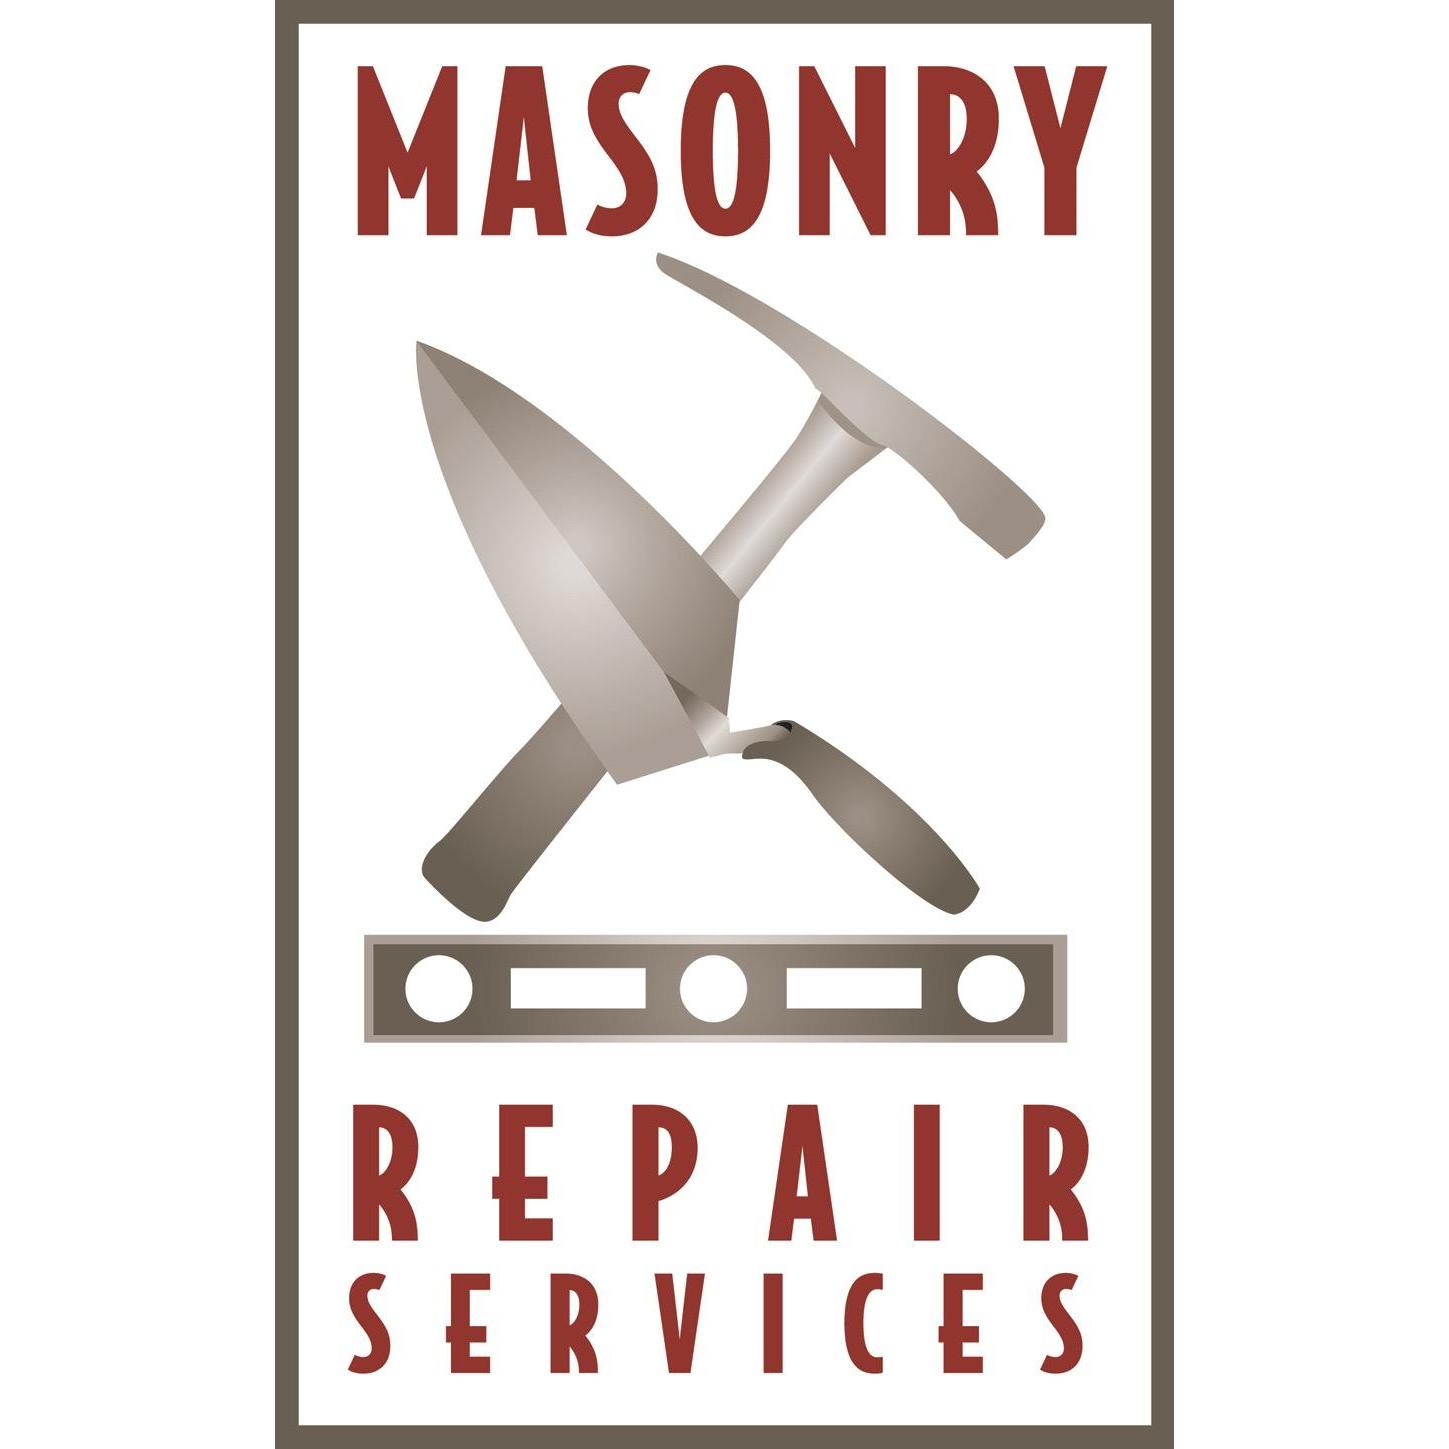 Masonry Repair Services - Phoenix, MD 21131 - (410)329-1426 | ShowMeLocal.com